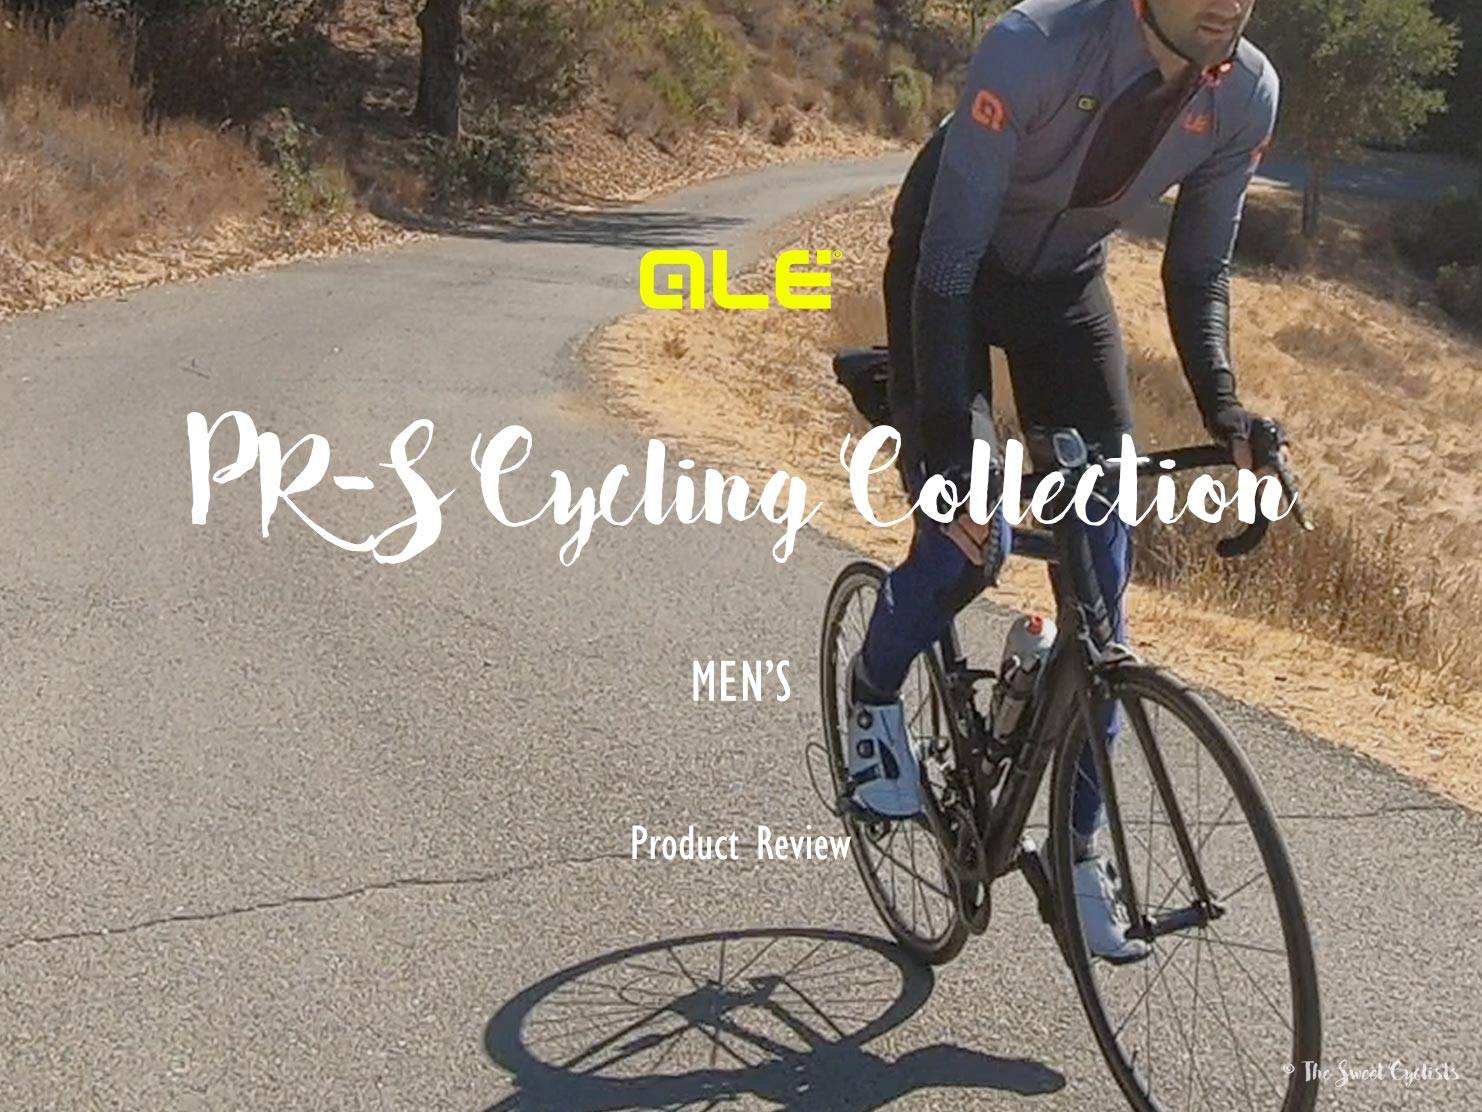 Hands on with Ale PR-S cycling collection